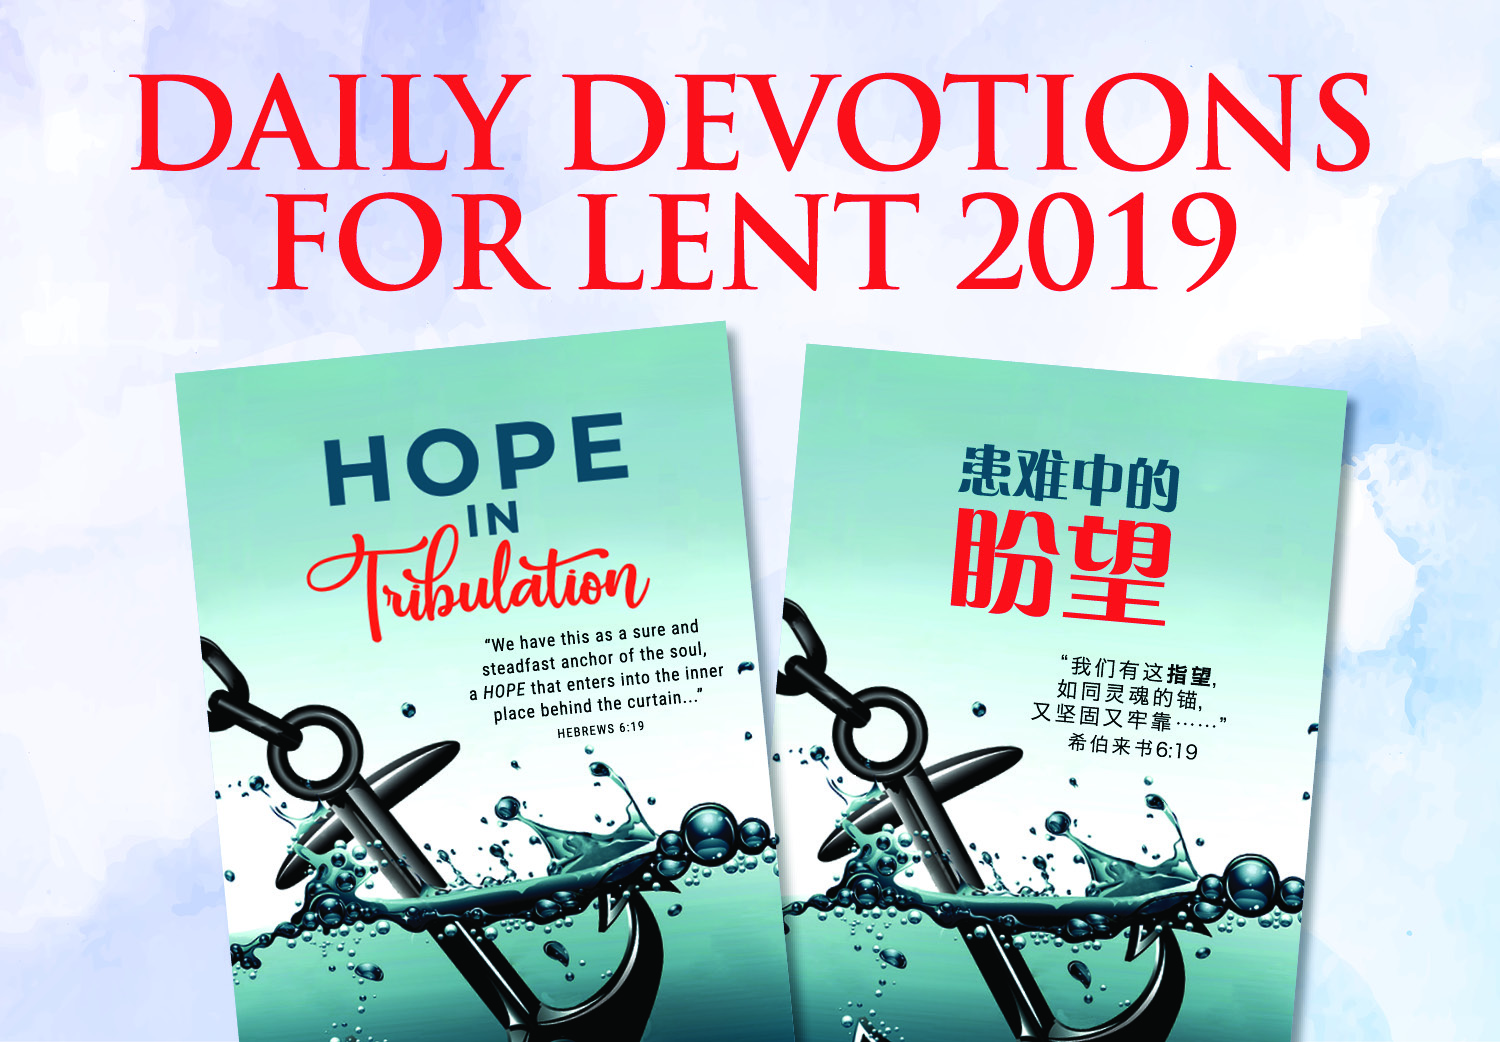 lent devotion | Search Results | Bible Society of Singapore